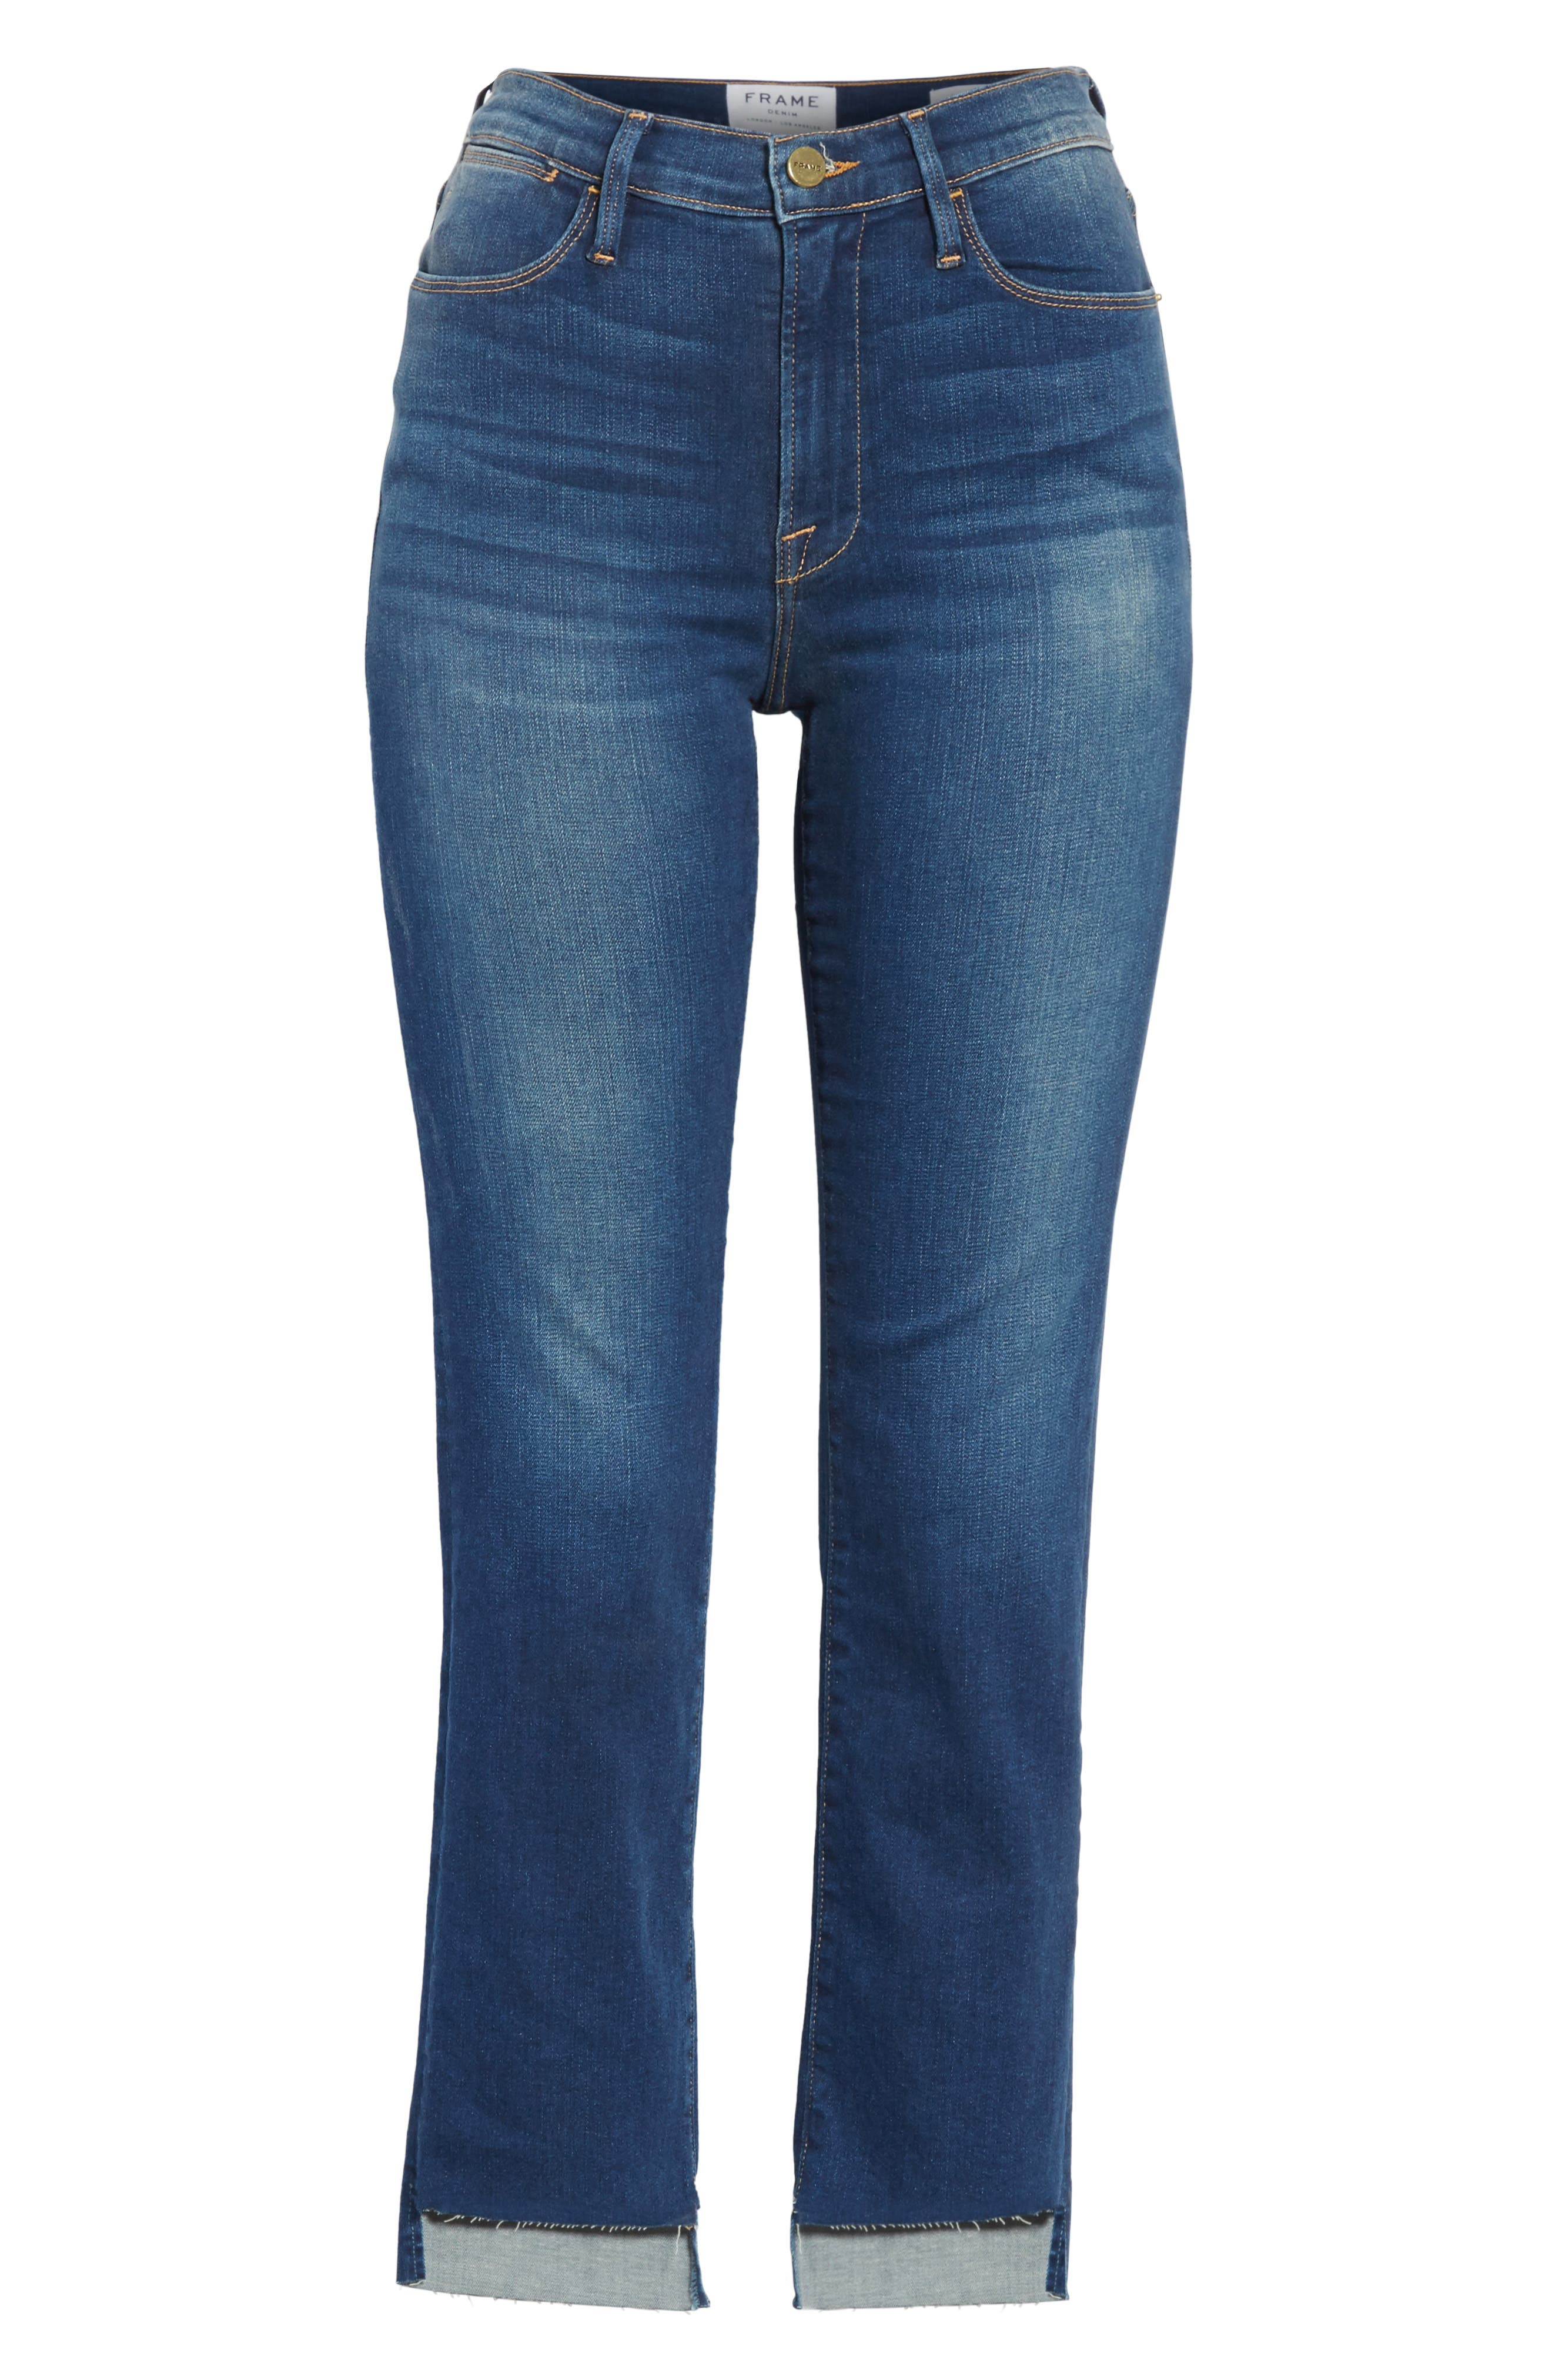 Le High Straight High Waist Raw Stagger Jeans,                             Alternate thumbnail 6, color,                             401